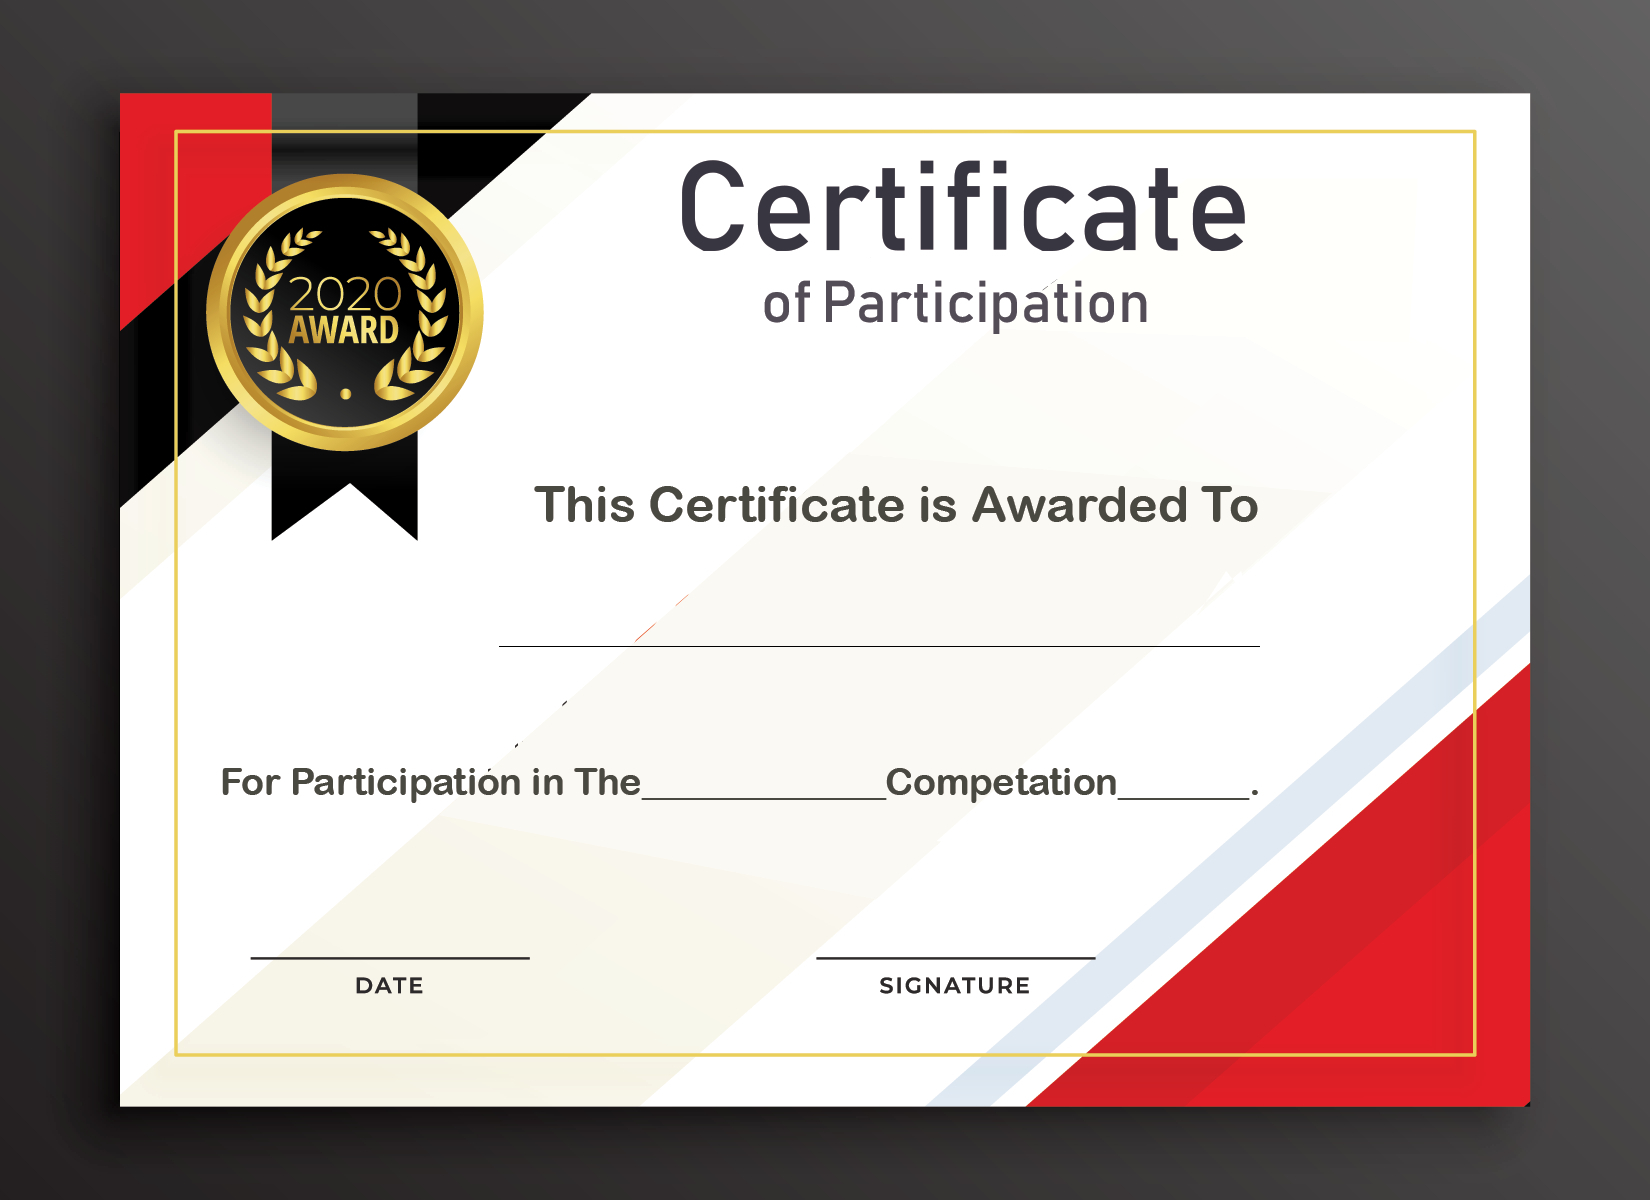 Certificate Of Participation Word Template  Business Plan with Certificate Of Participation Word Template